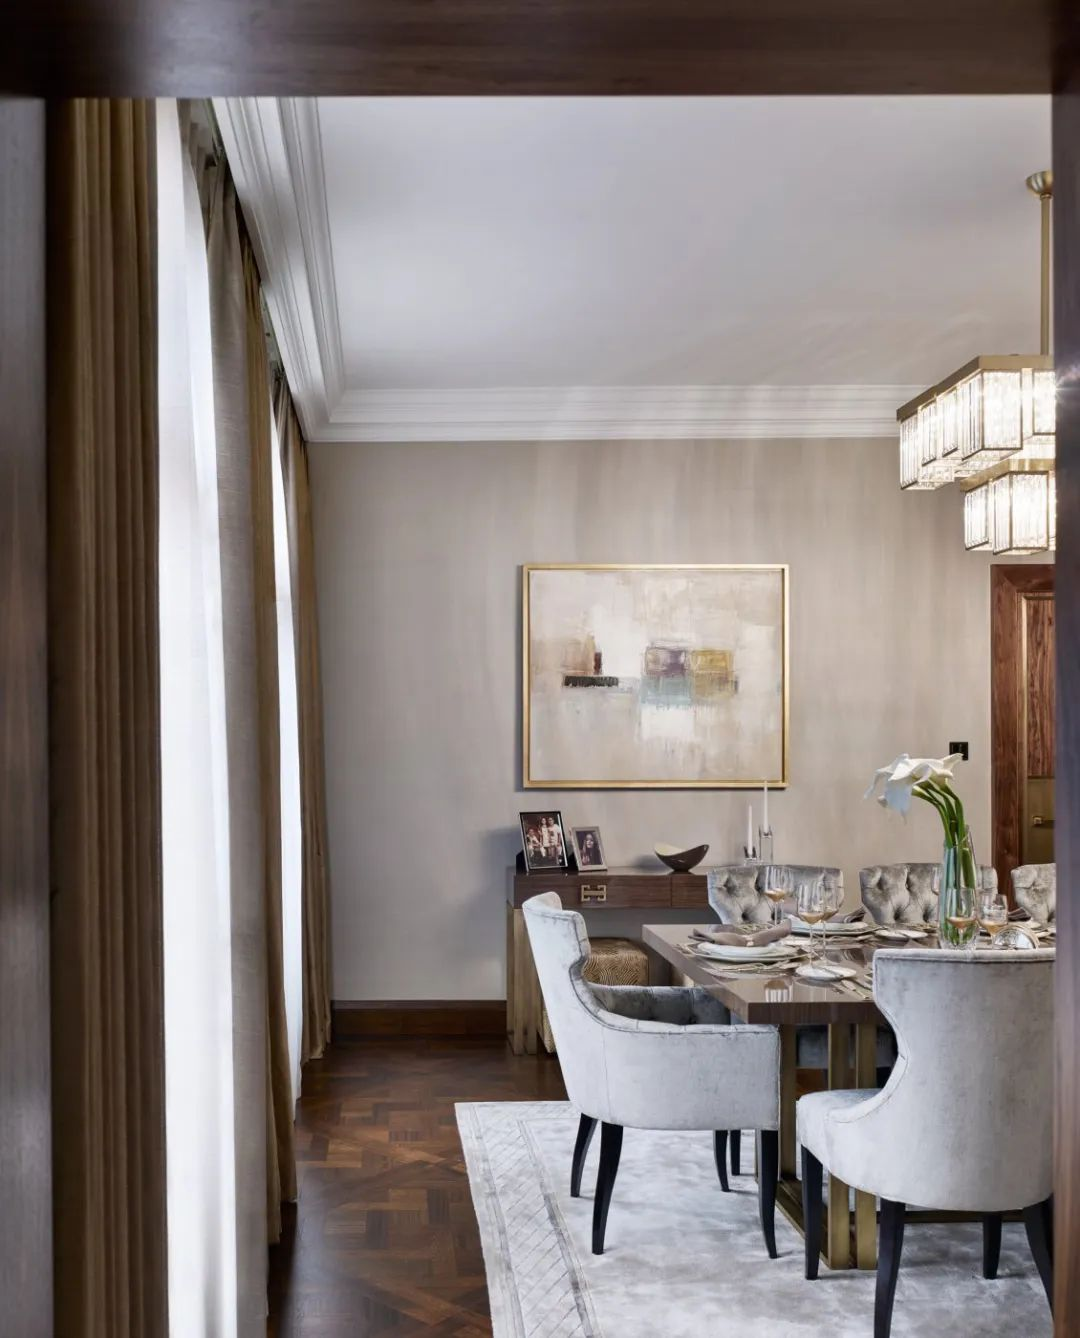 126 Custom Luxury Dining Room Interior Designs: Pin By Martin Kyumba On Luxury Furniture -custom Made In